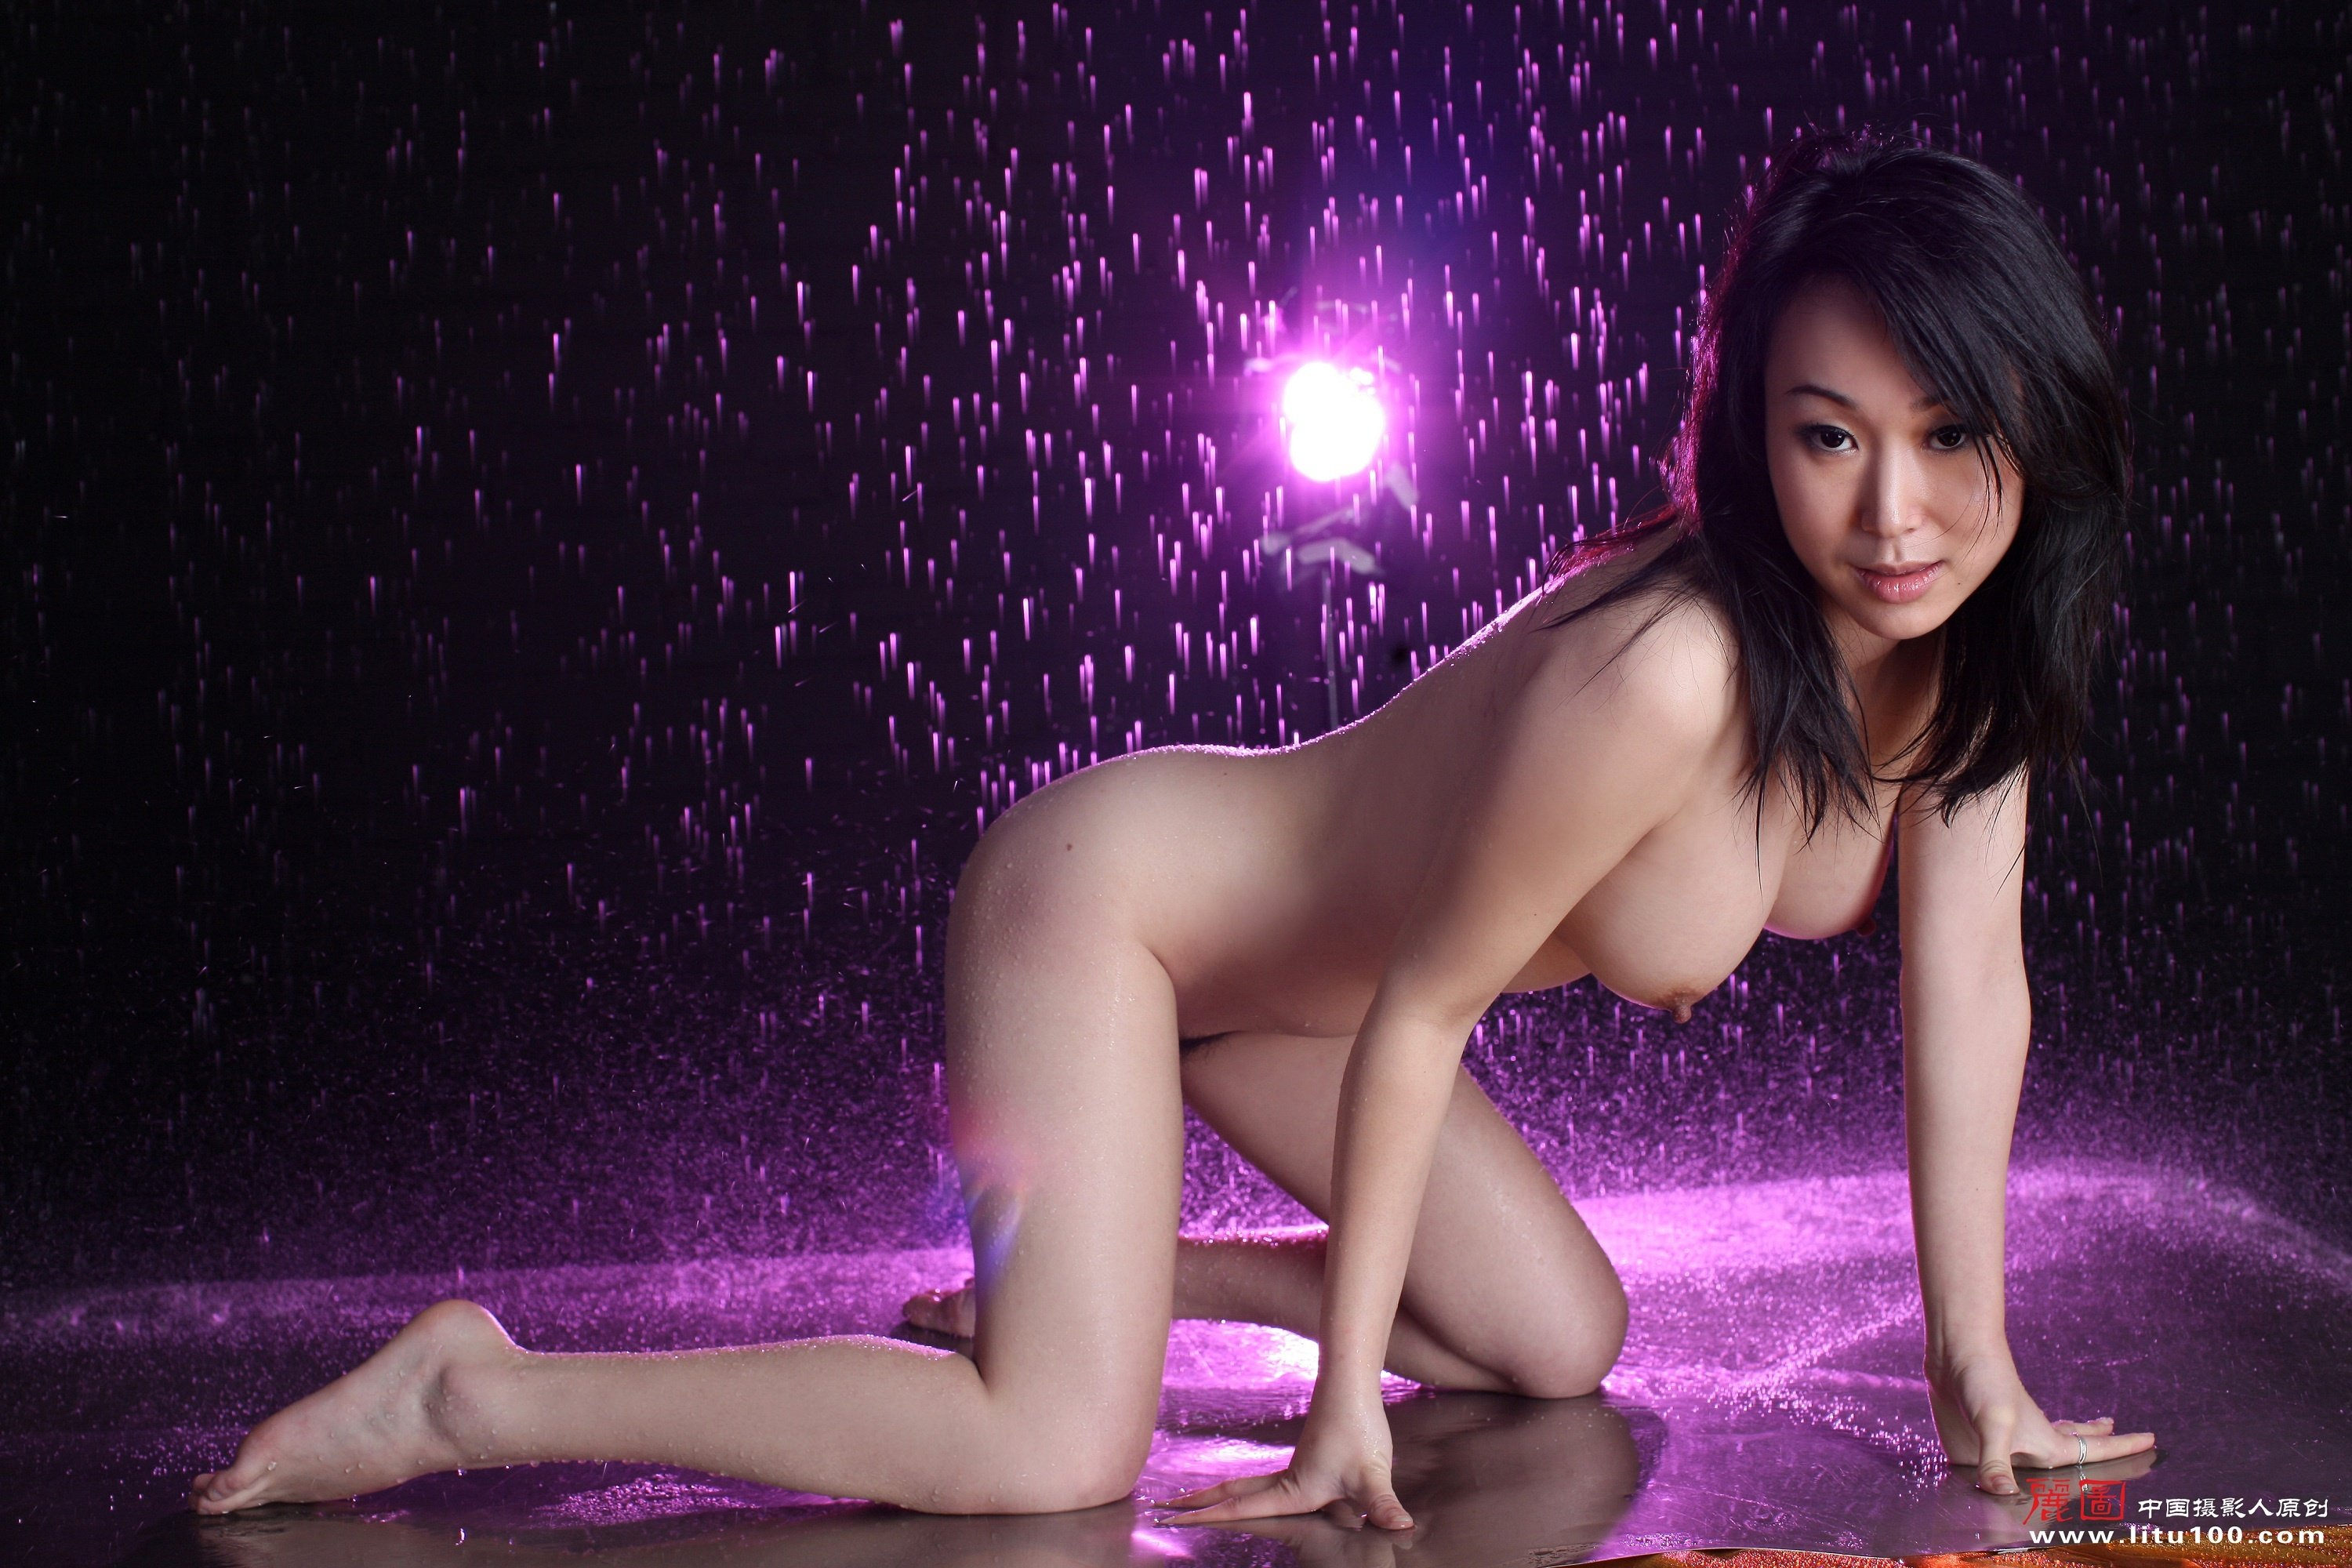 positions-beautiful-naked-oriental-girls